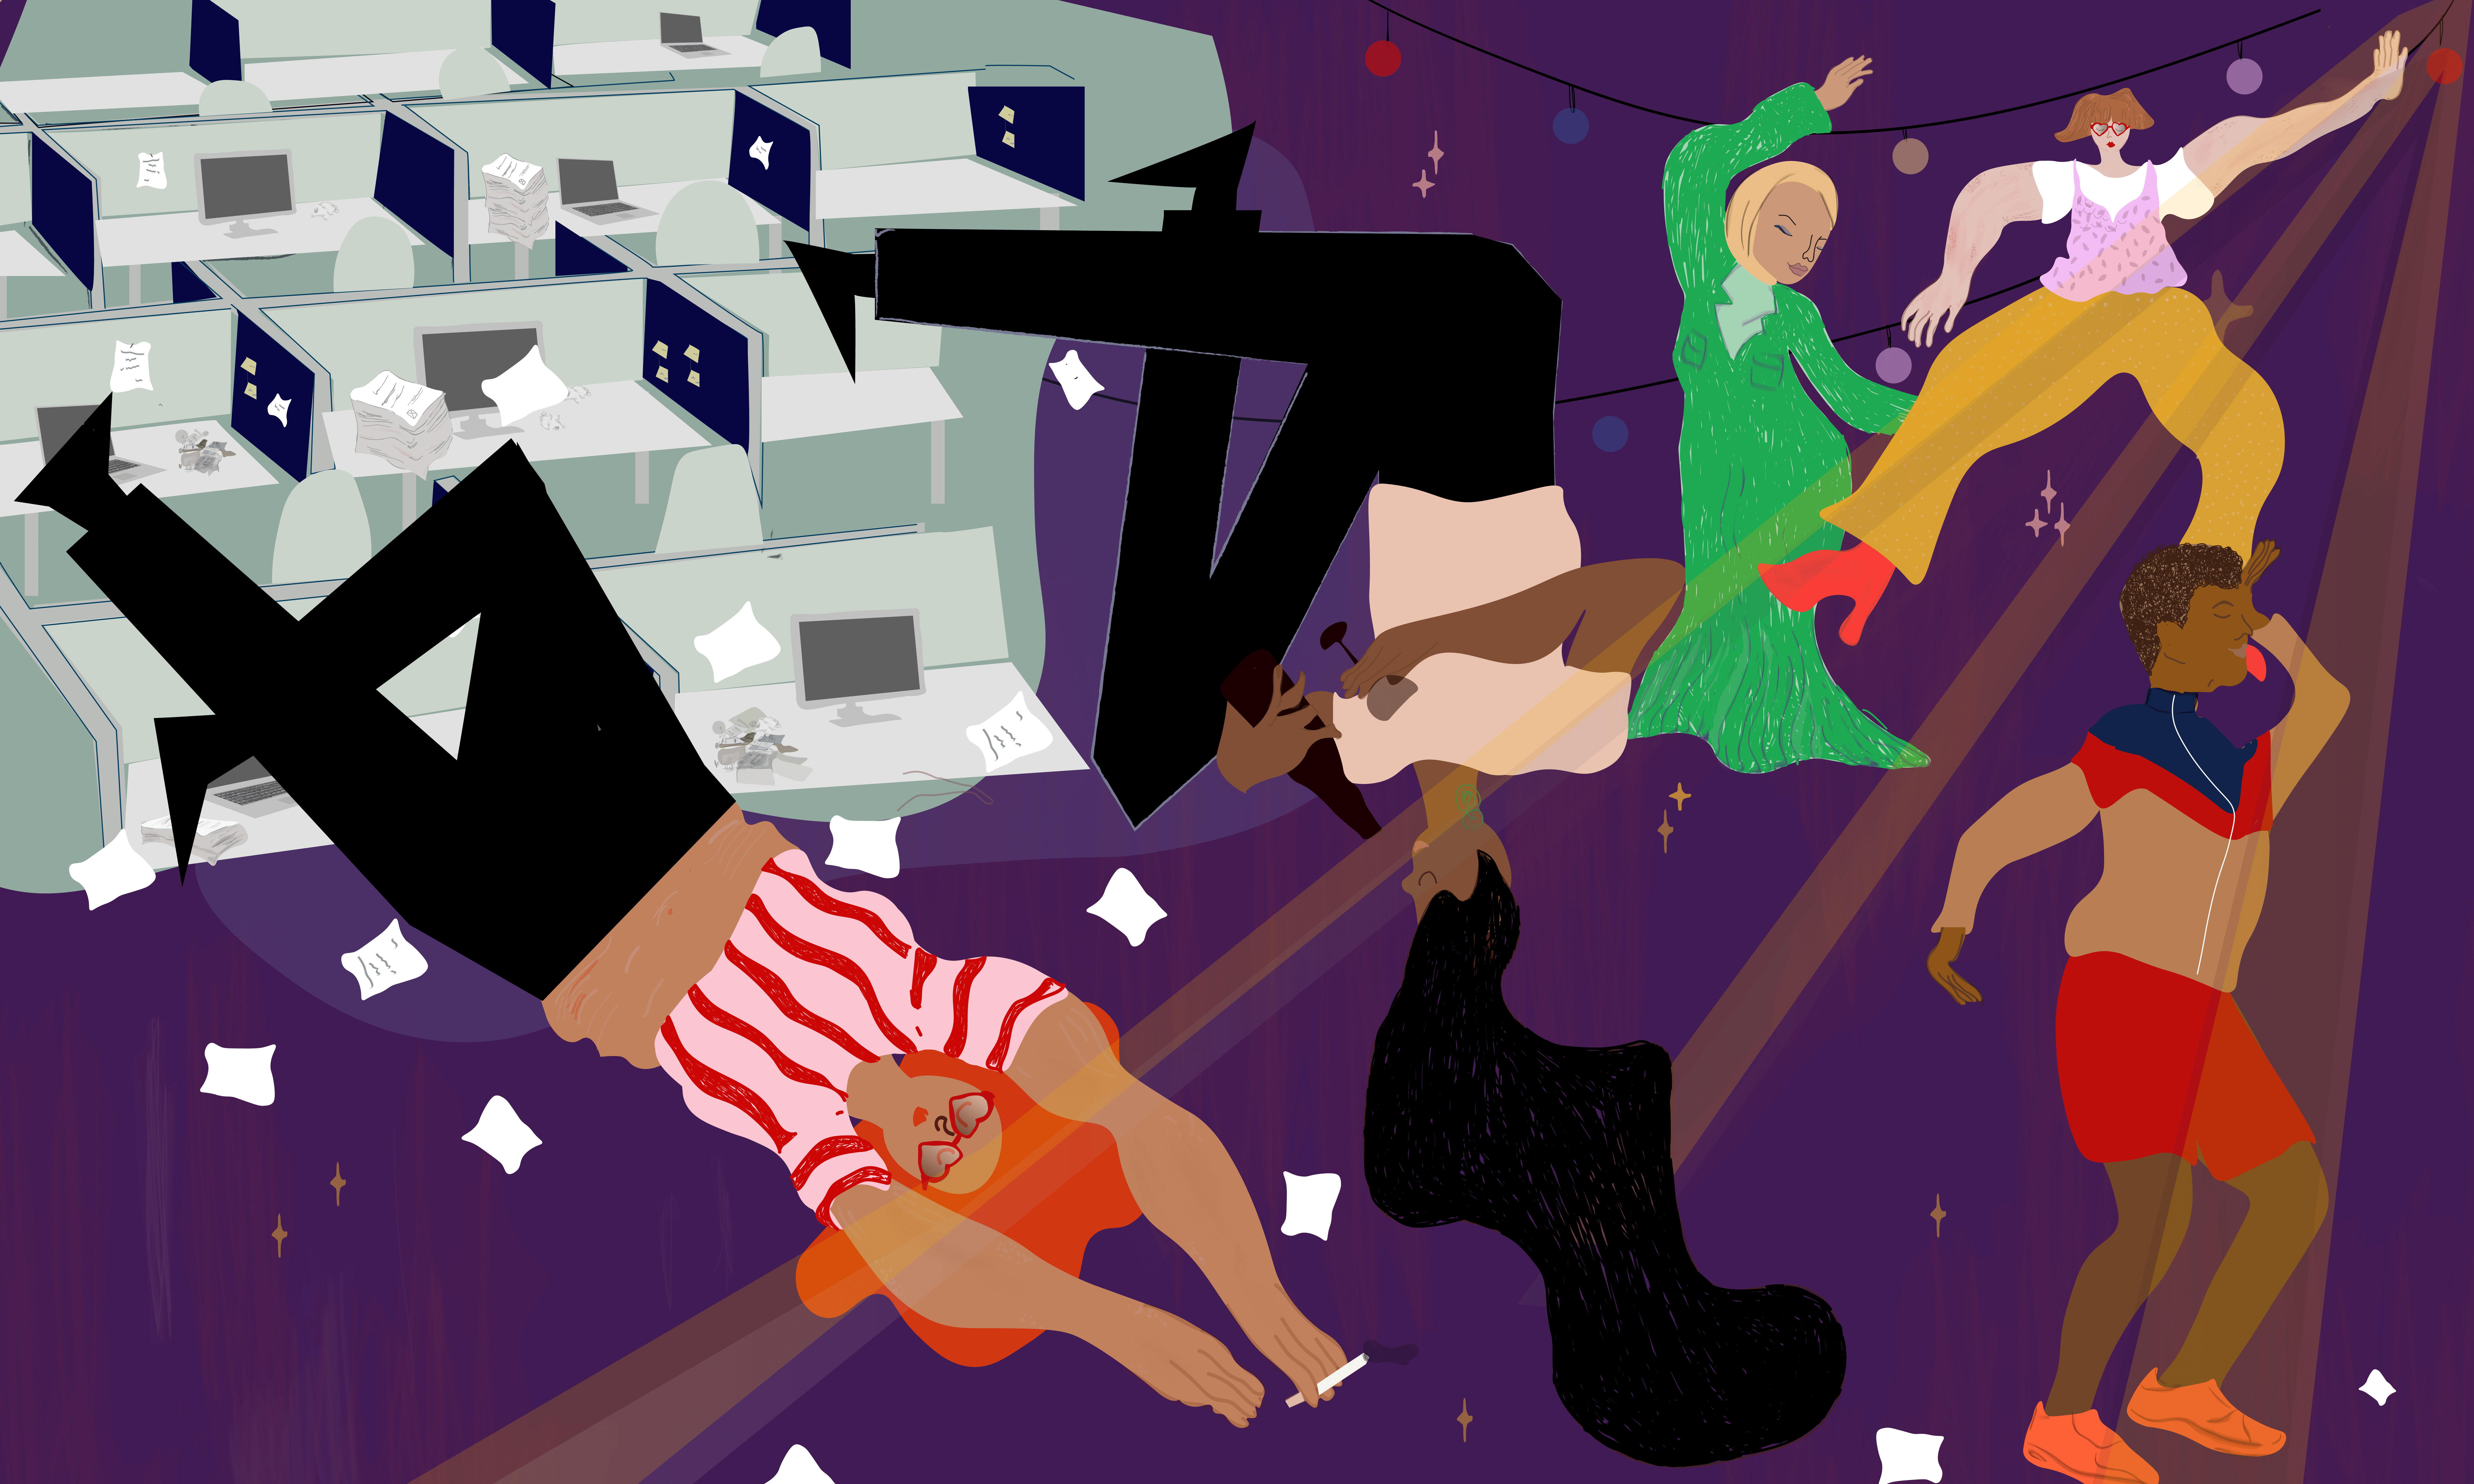 Why messy afterparties feel like resistance to a work-obsessed society